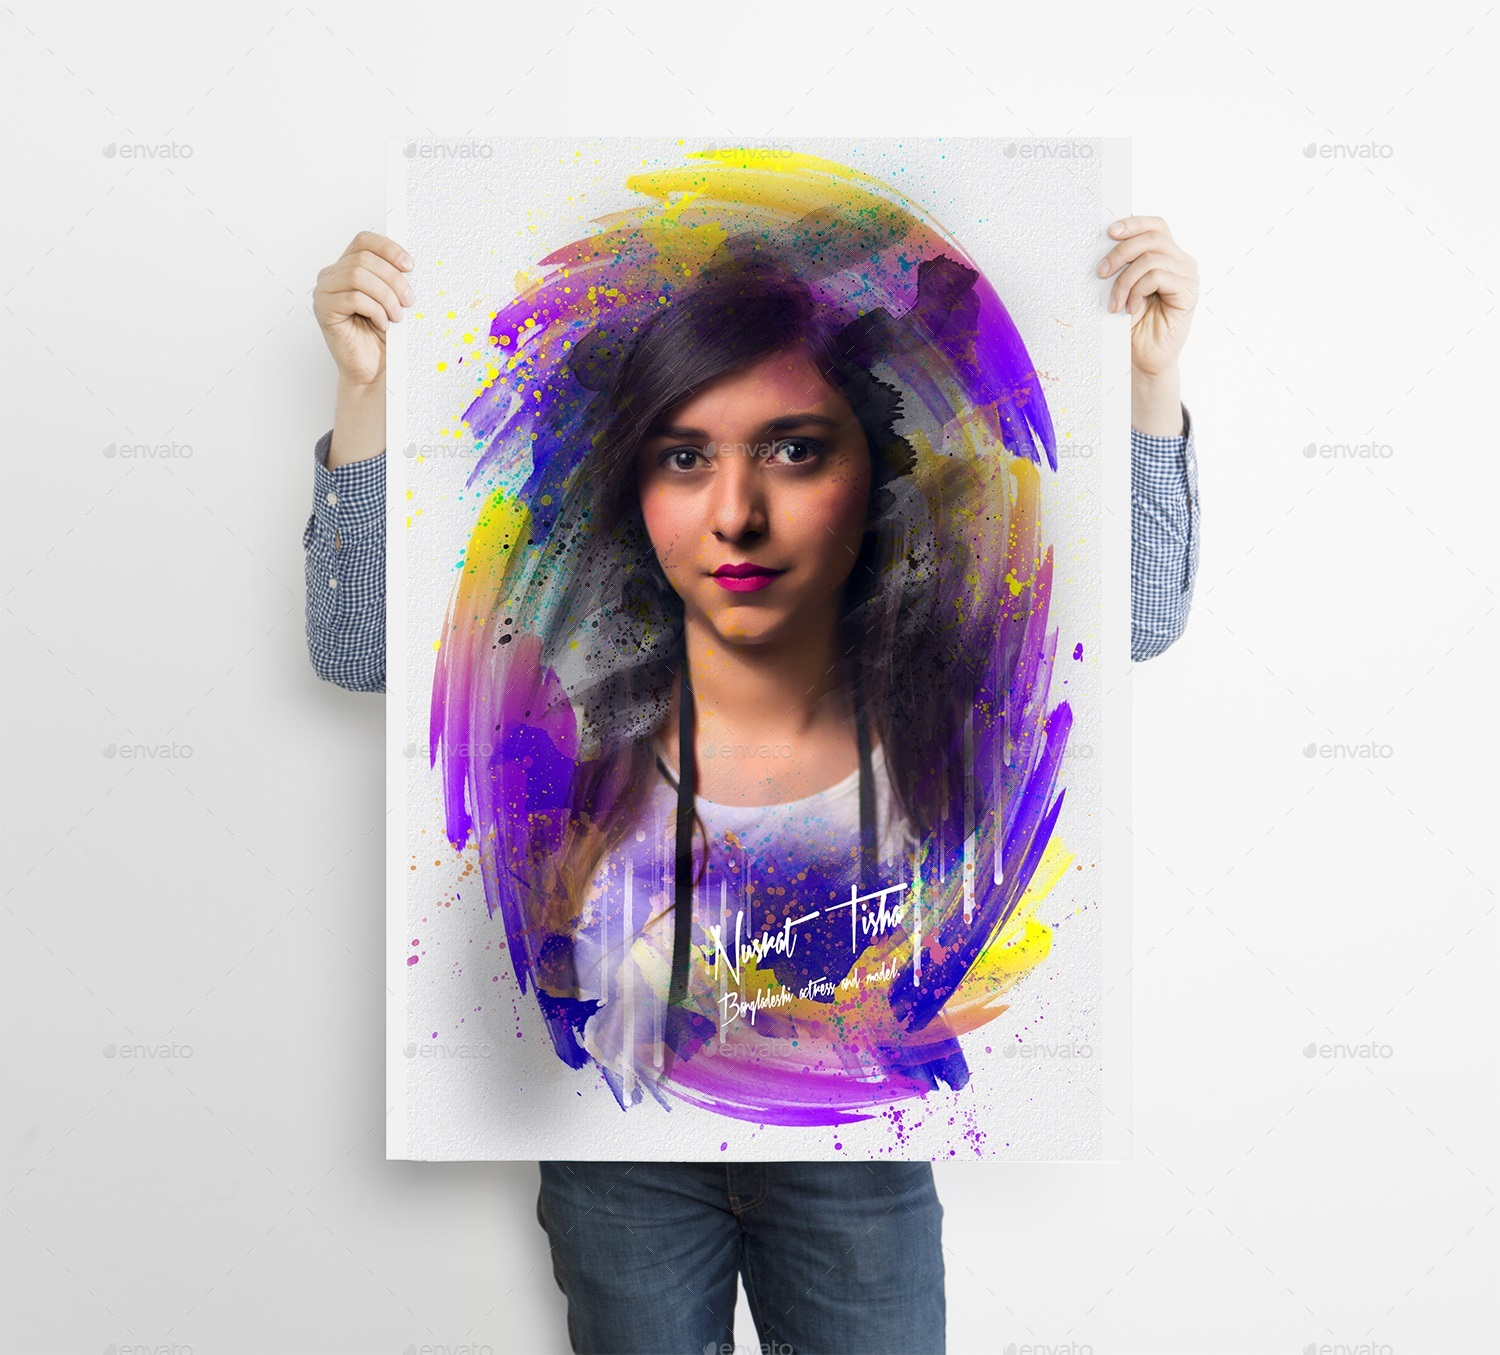 Art Stick Photo Template